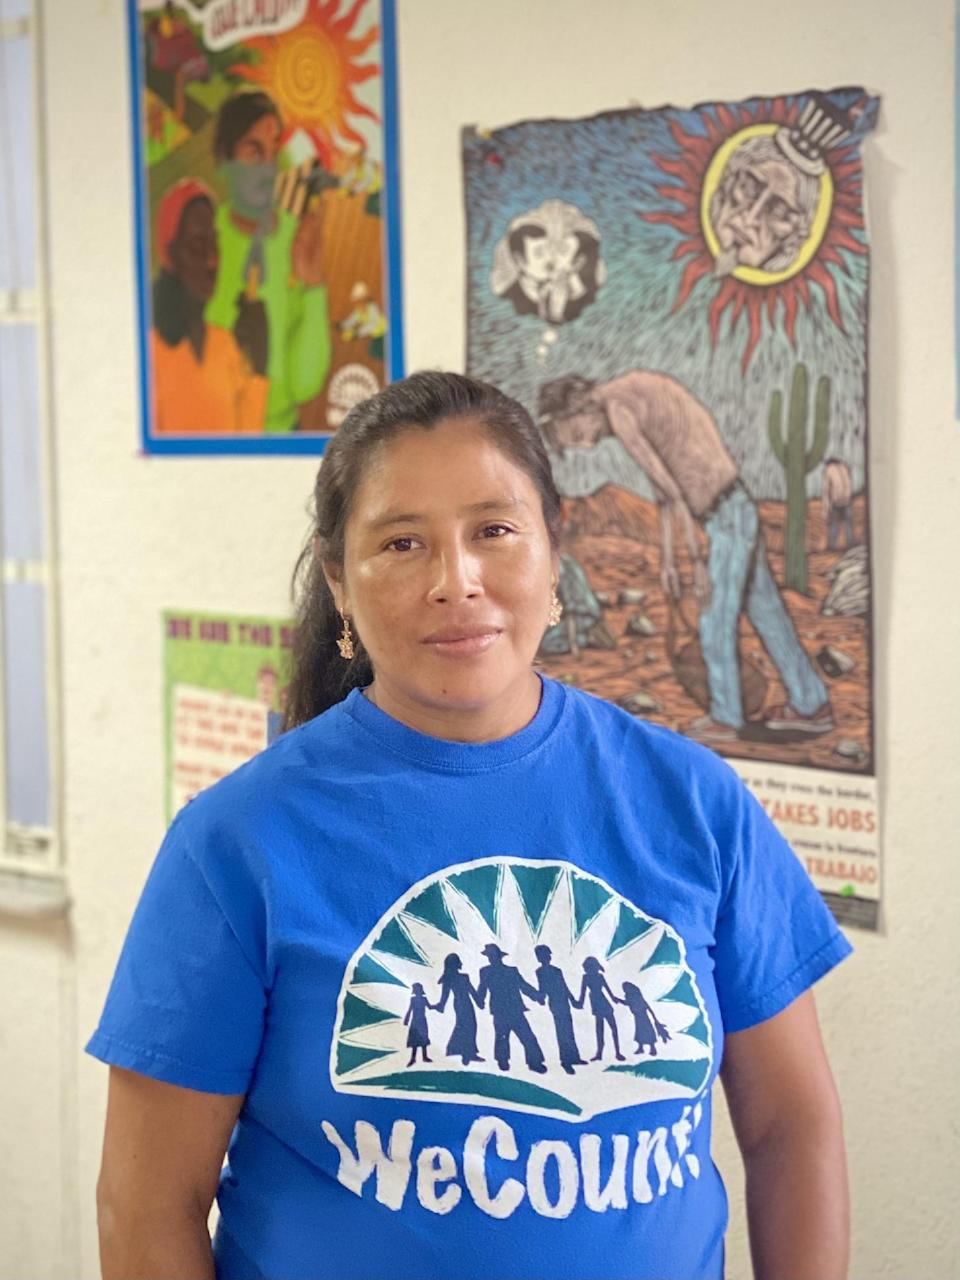 Martha Gabriel, 41, is a Homestead, Florida farmworker whose health has suffered from heat. She's a member of WeCount, a group for immigrant rights.